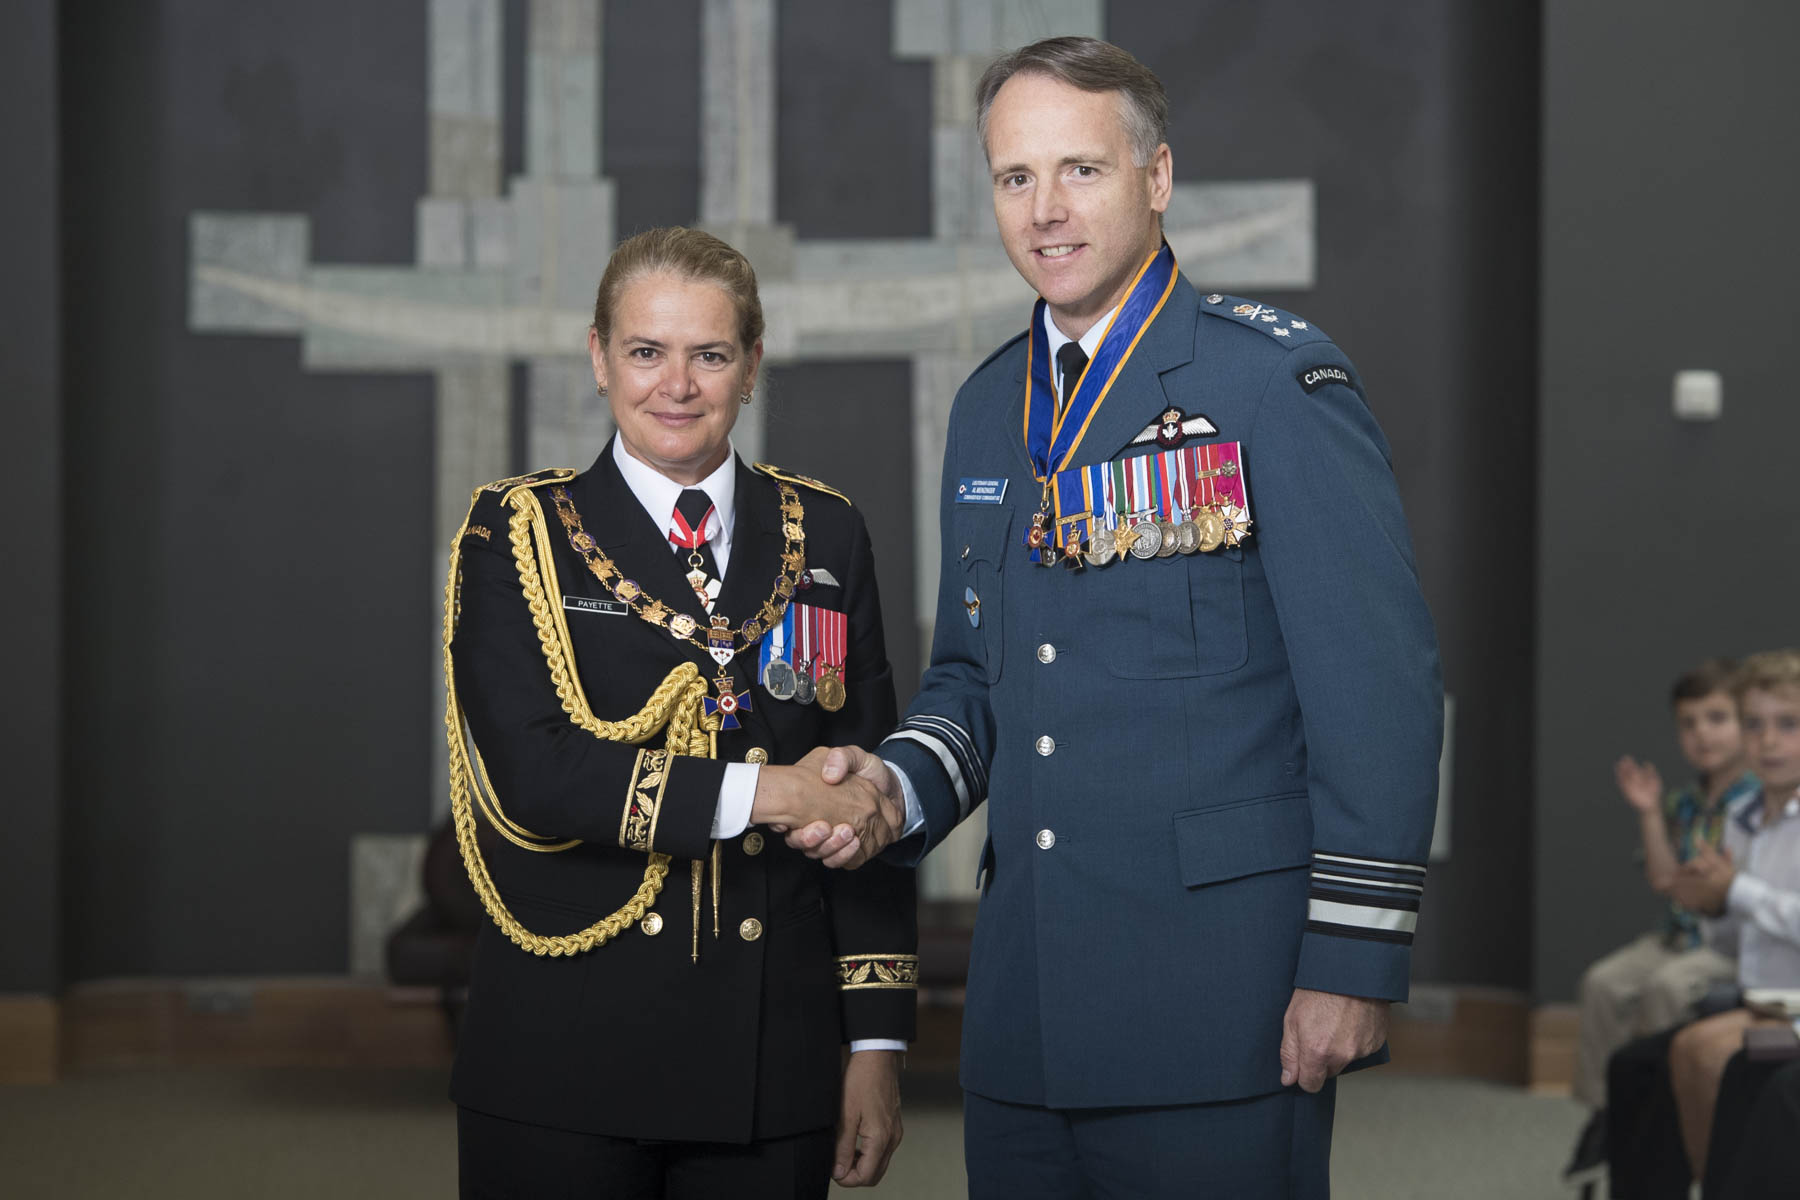 The Governor General bestowed the honour of Commander of the Order of Military Merit upon Lieutenant-General Alexander Donald Meinzinger, C.M.M., M.S.M., C.D.